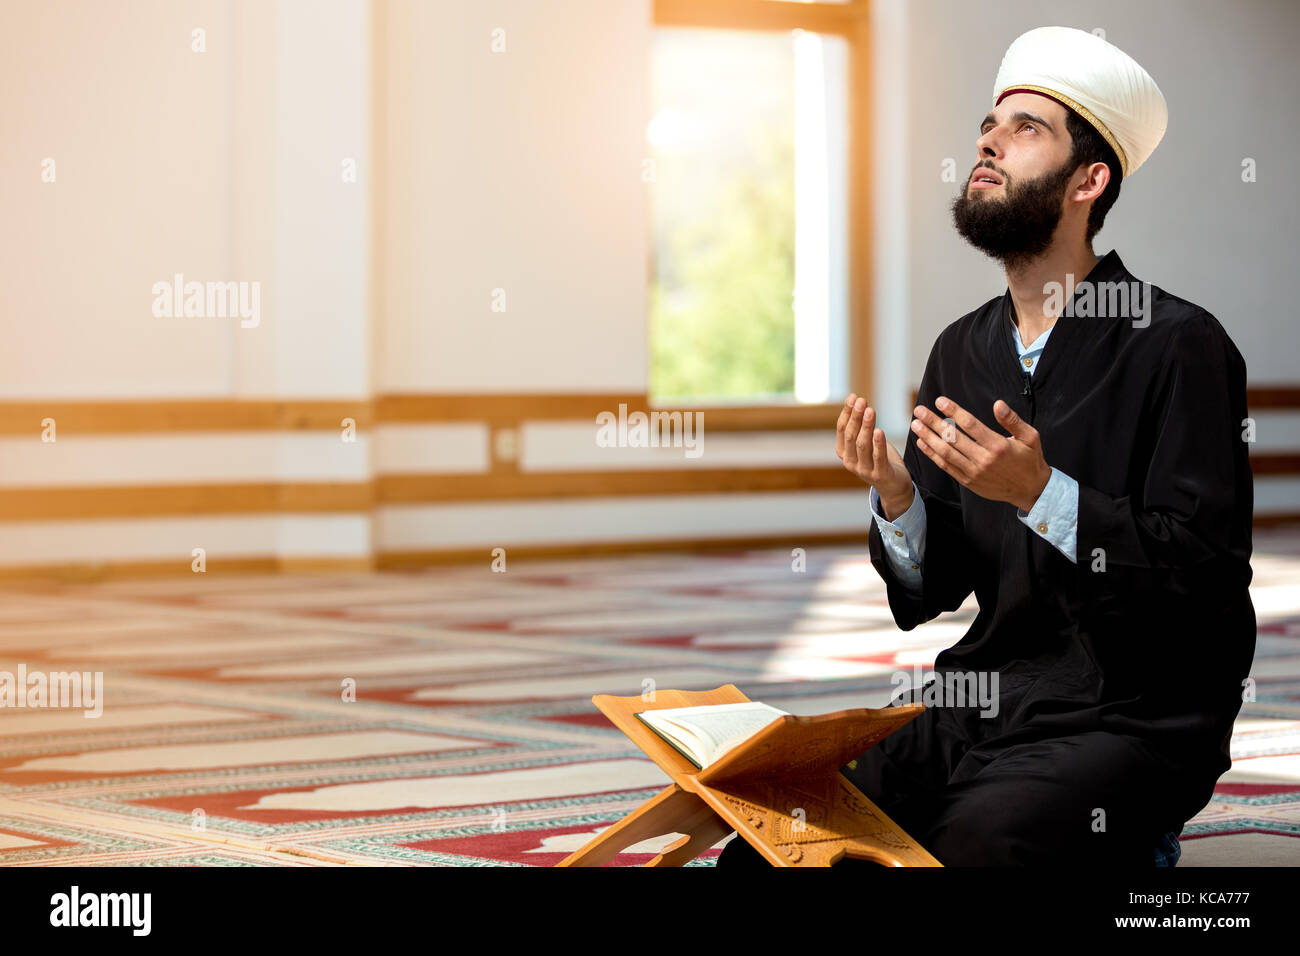 Religious muslim man praying inside the mosque - Stock Image